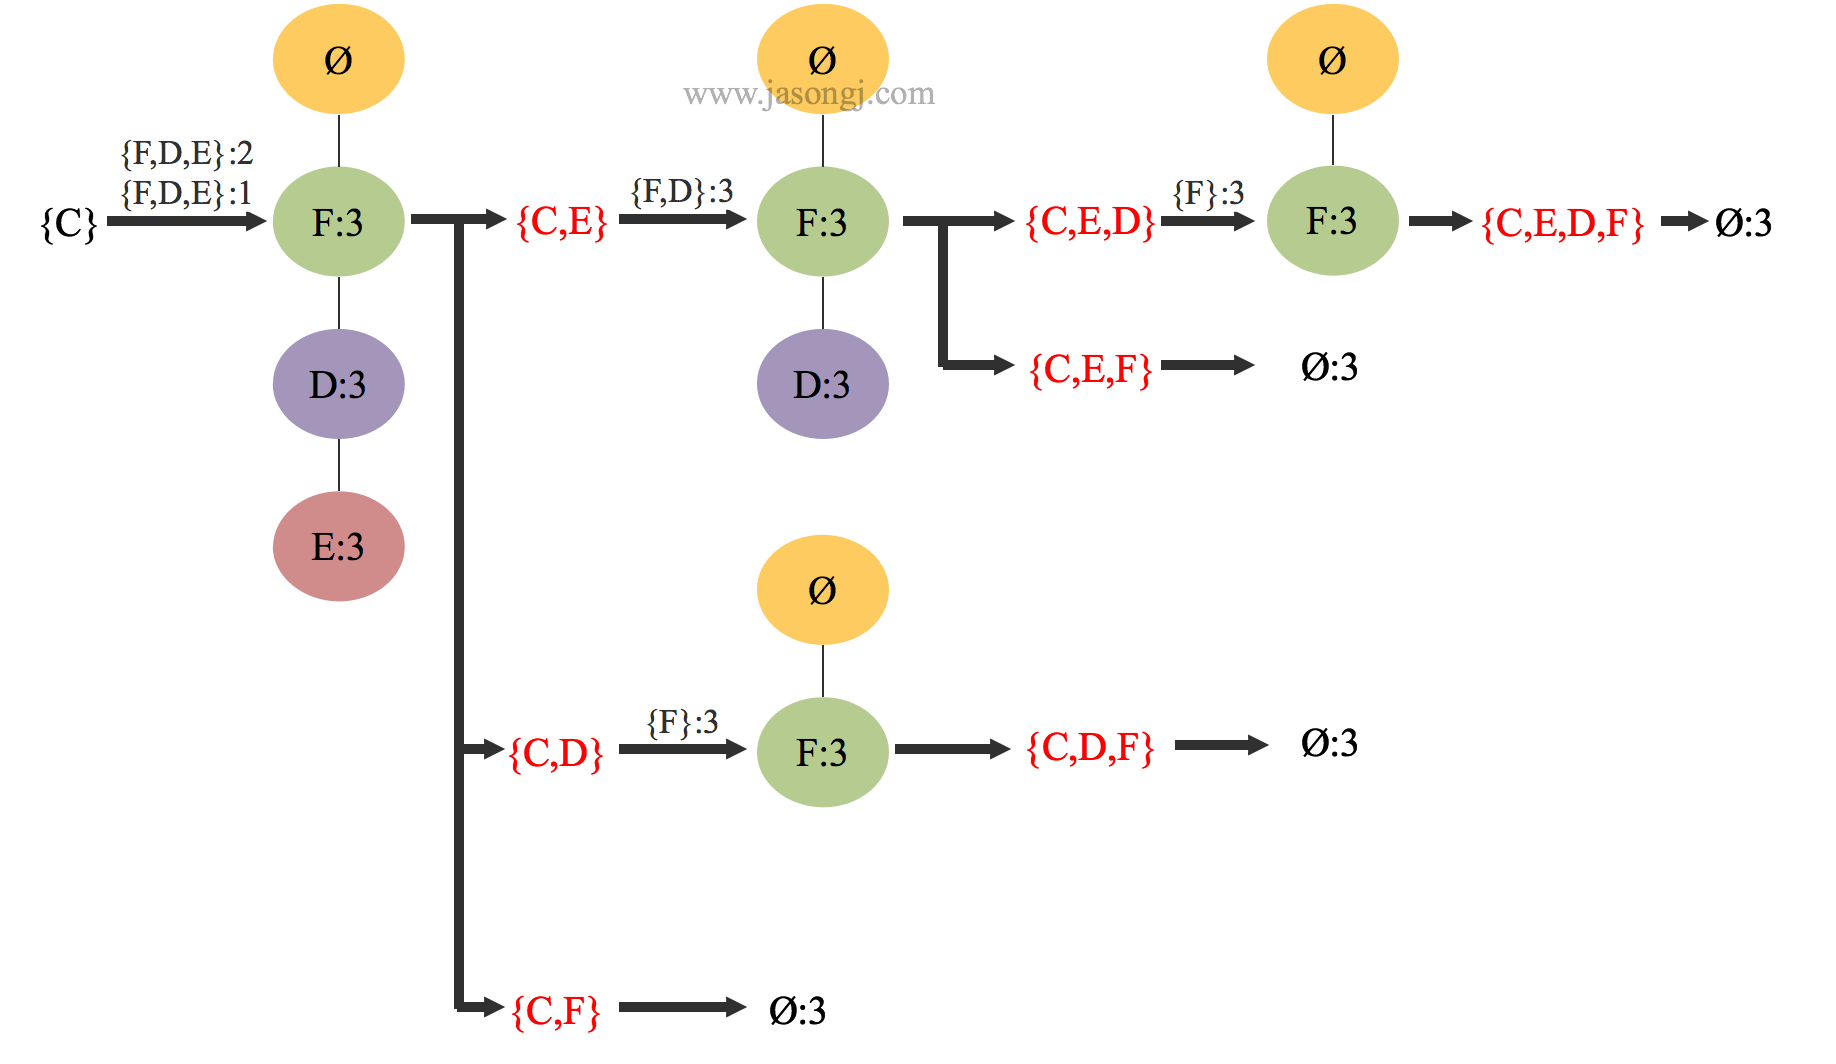 Conditaional Frequent Pattern Tree for C